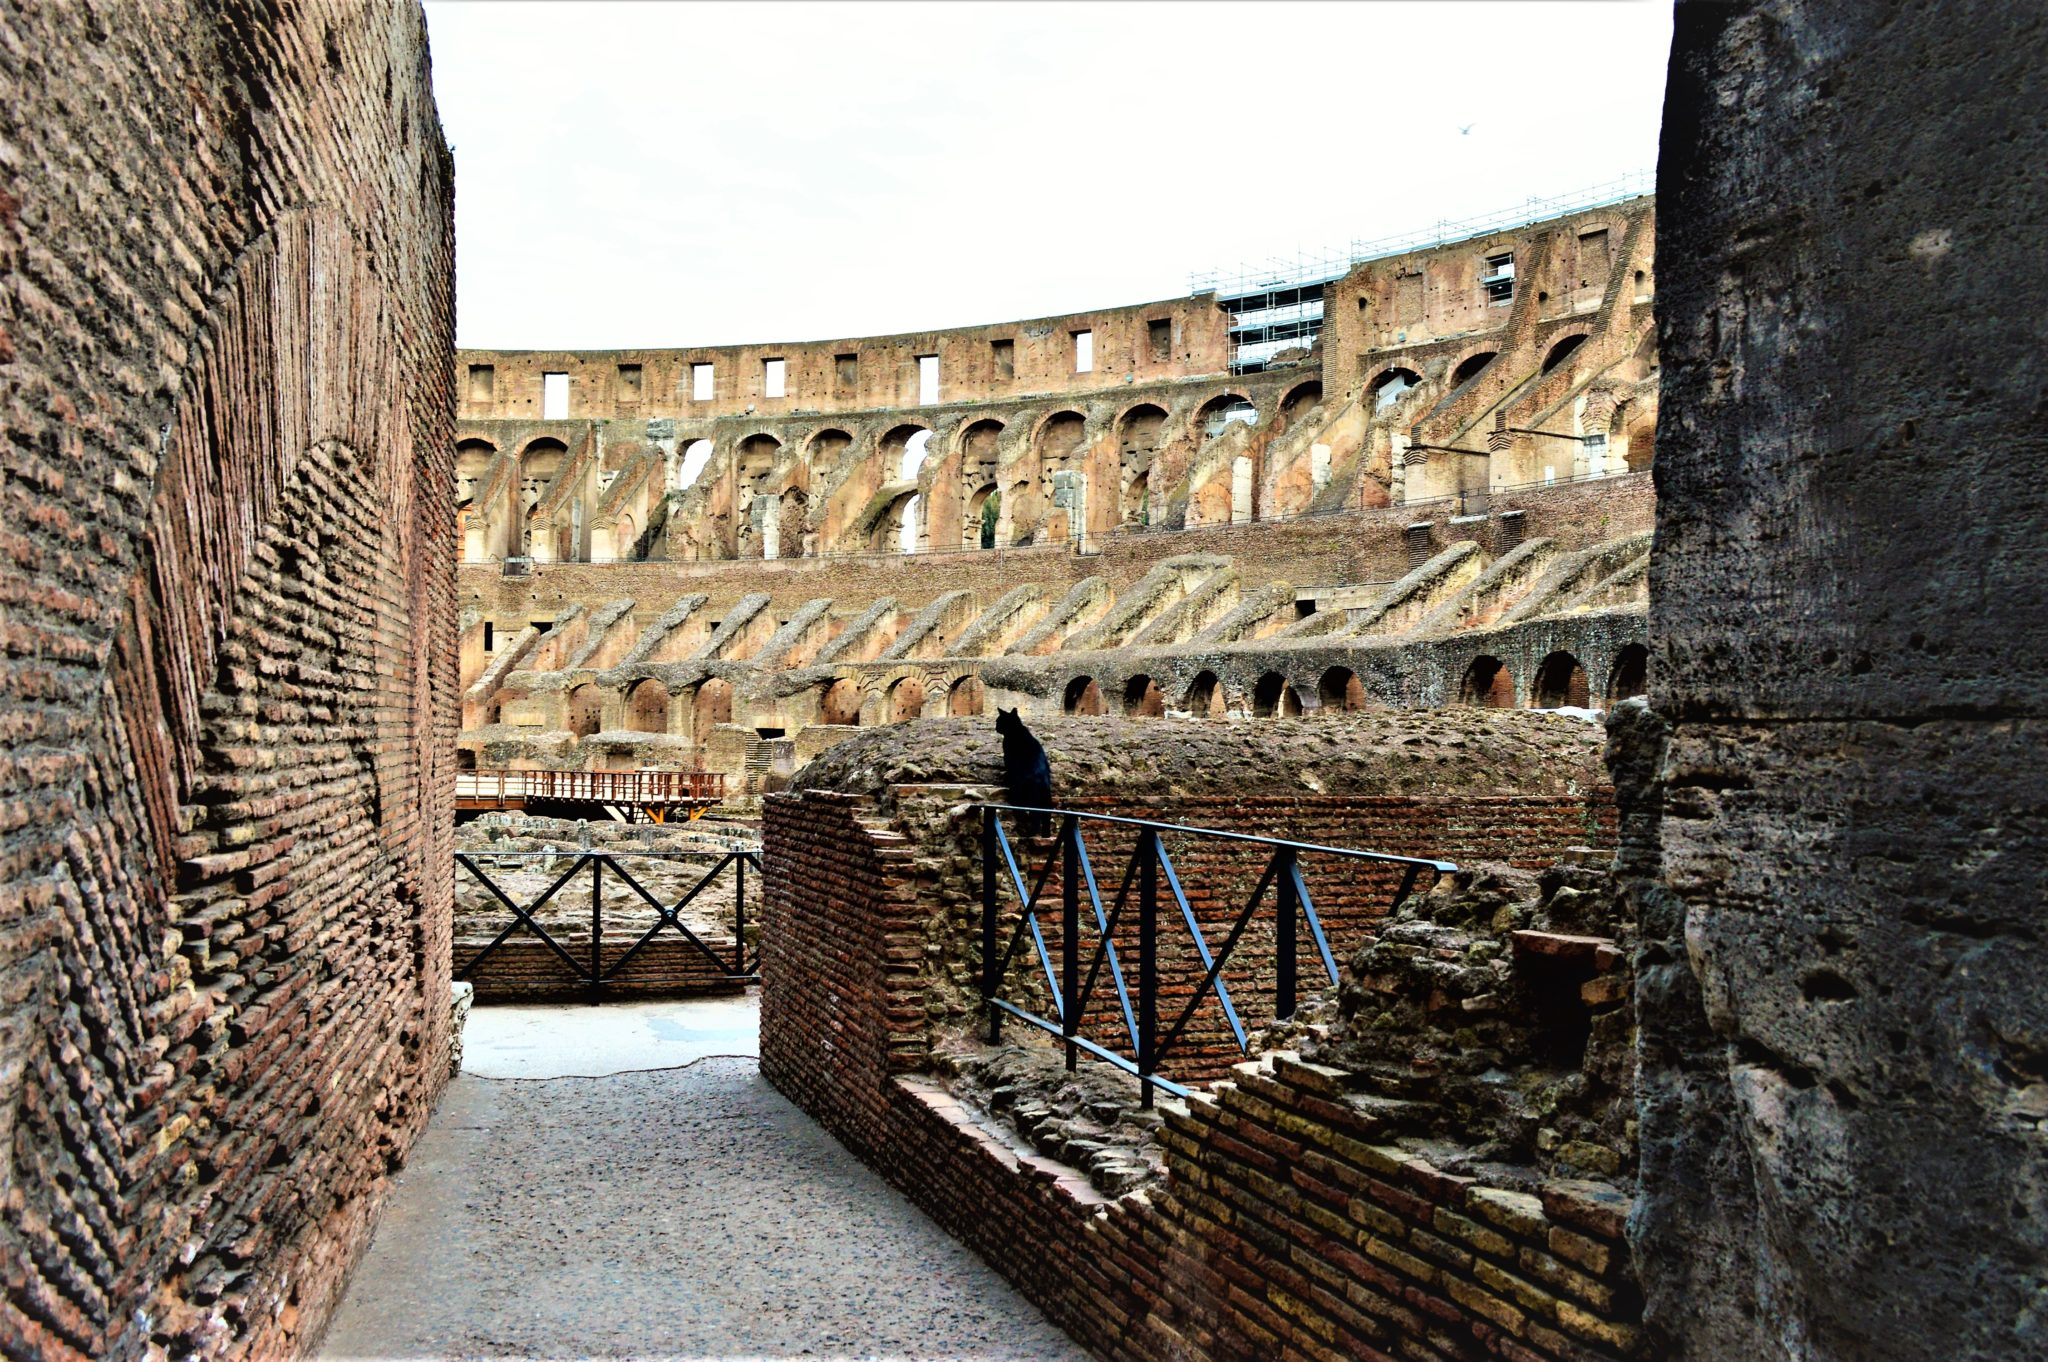 Cat inside the Colosseum, Rome, Italy